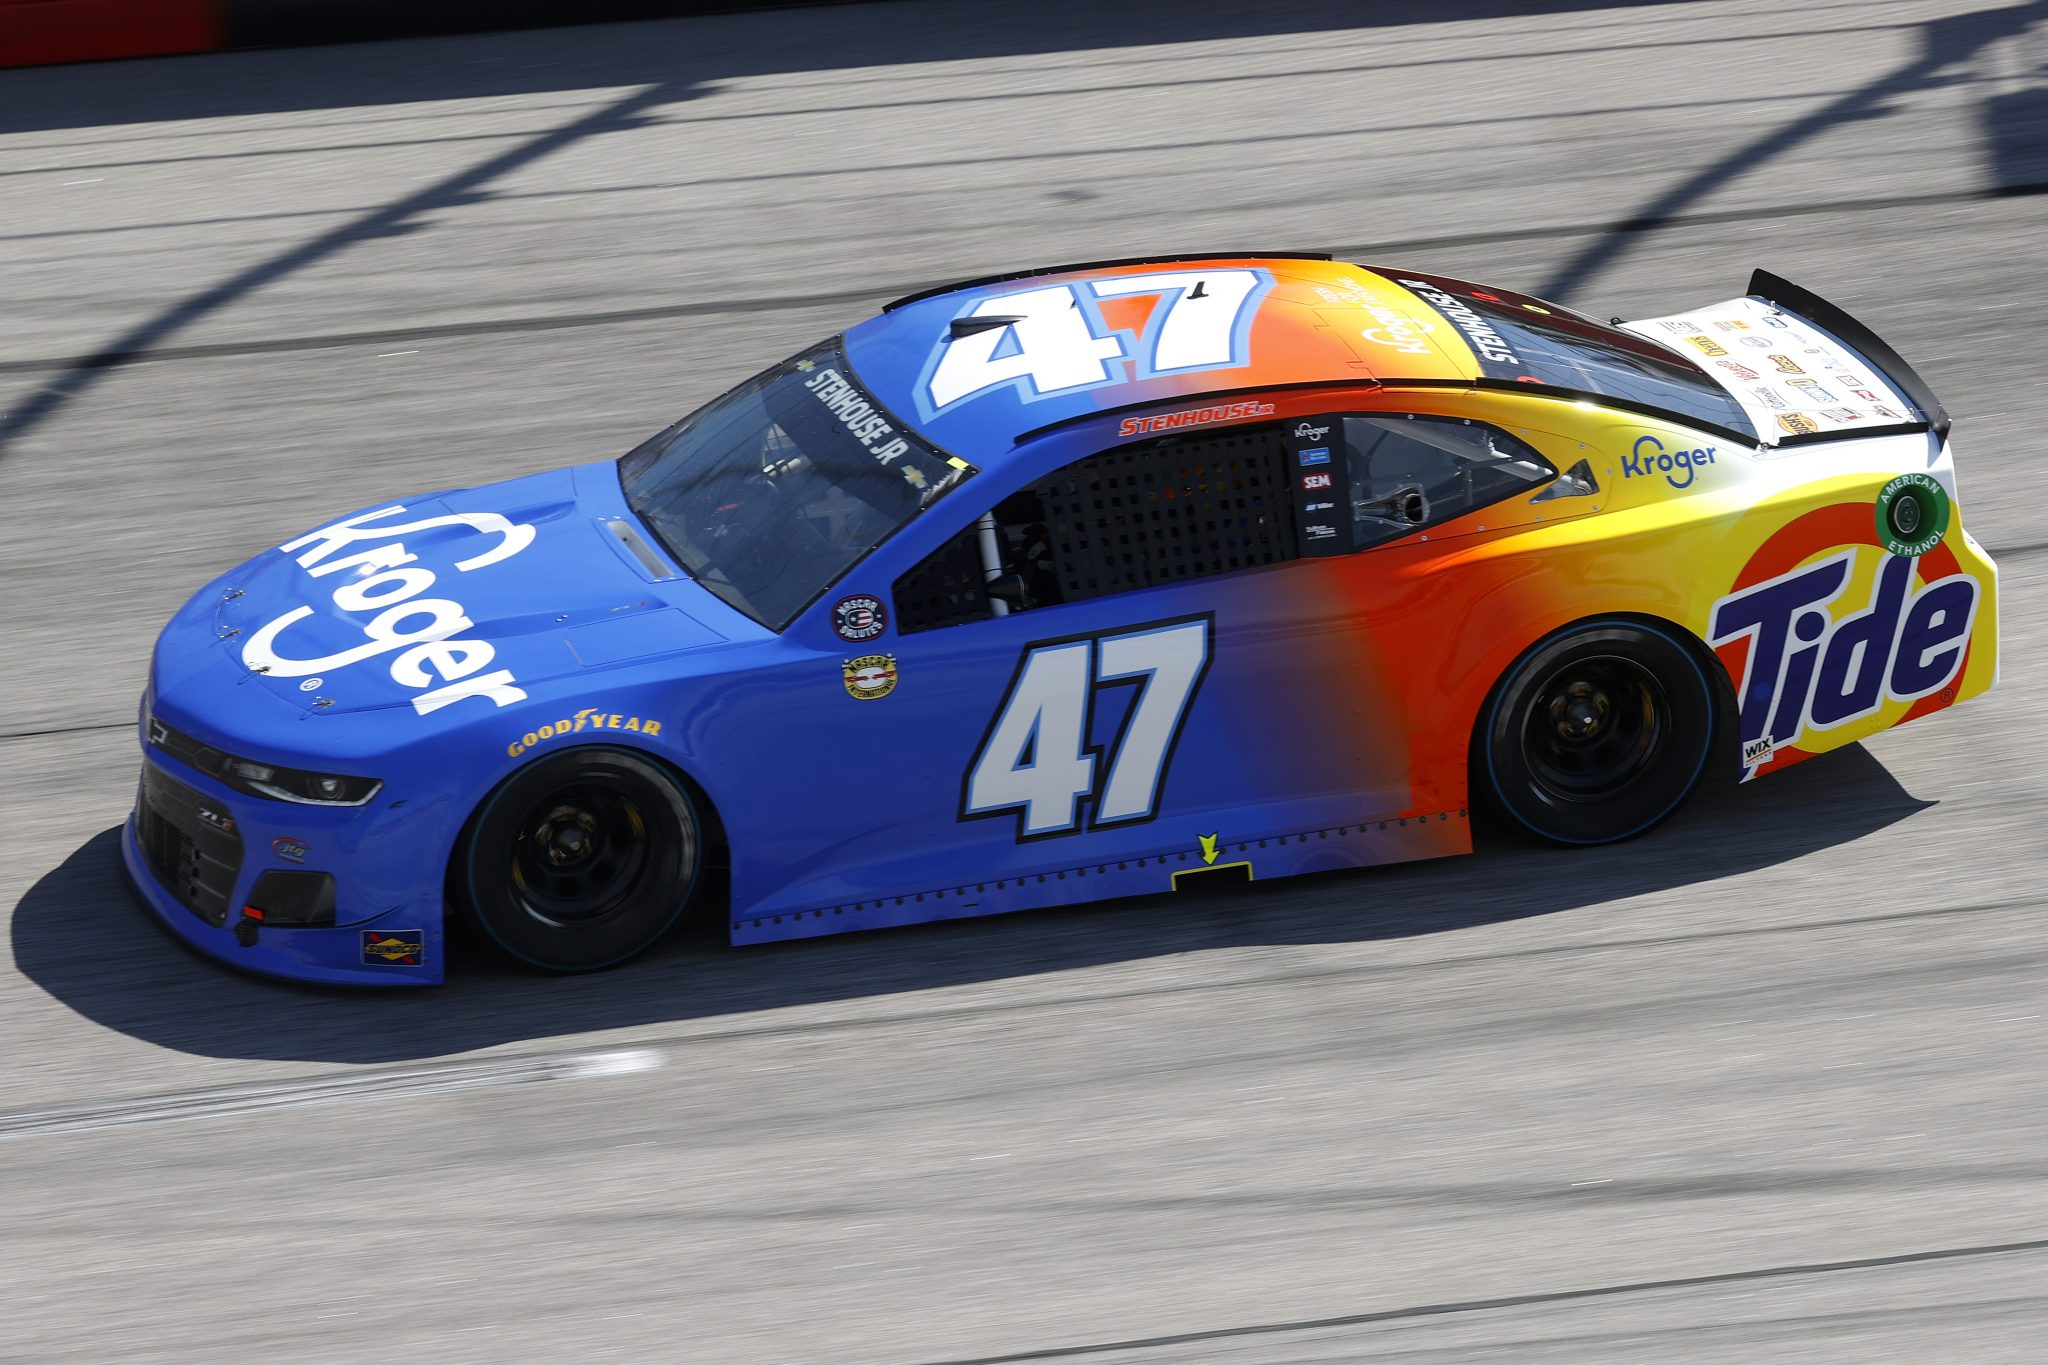 DARLINGTON, SOUTH CAROLINA - MAY 09: Ricky Stenhouse Jr., driver of the #47 Kroger/Tide Chevrolet, drives during the NASCAR Cup Series Goodyear 400 at Darlington Raceway on May 09, 2021 in Darlington, South Carolina. (Photo by Chris Graythen/Getty Images) | Getty Images